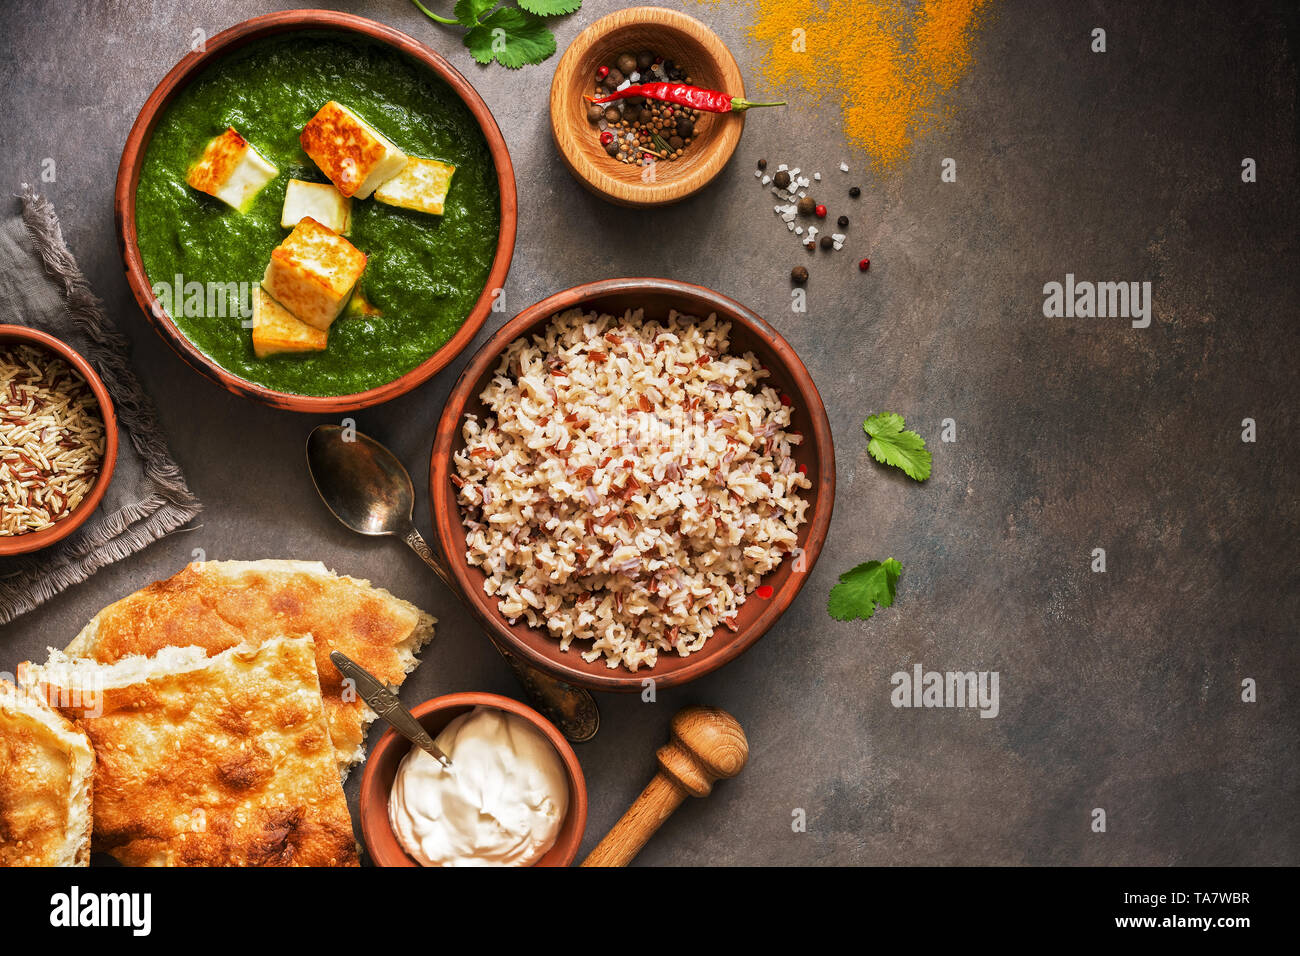 Fantastic Indian Food Palak Paneer Or Spinach And Cottage Cheese Home Interior And Landscaping Analalmasignezvosmurscom